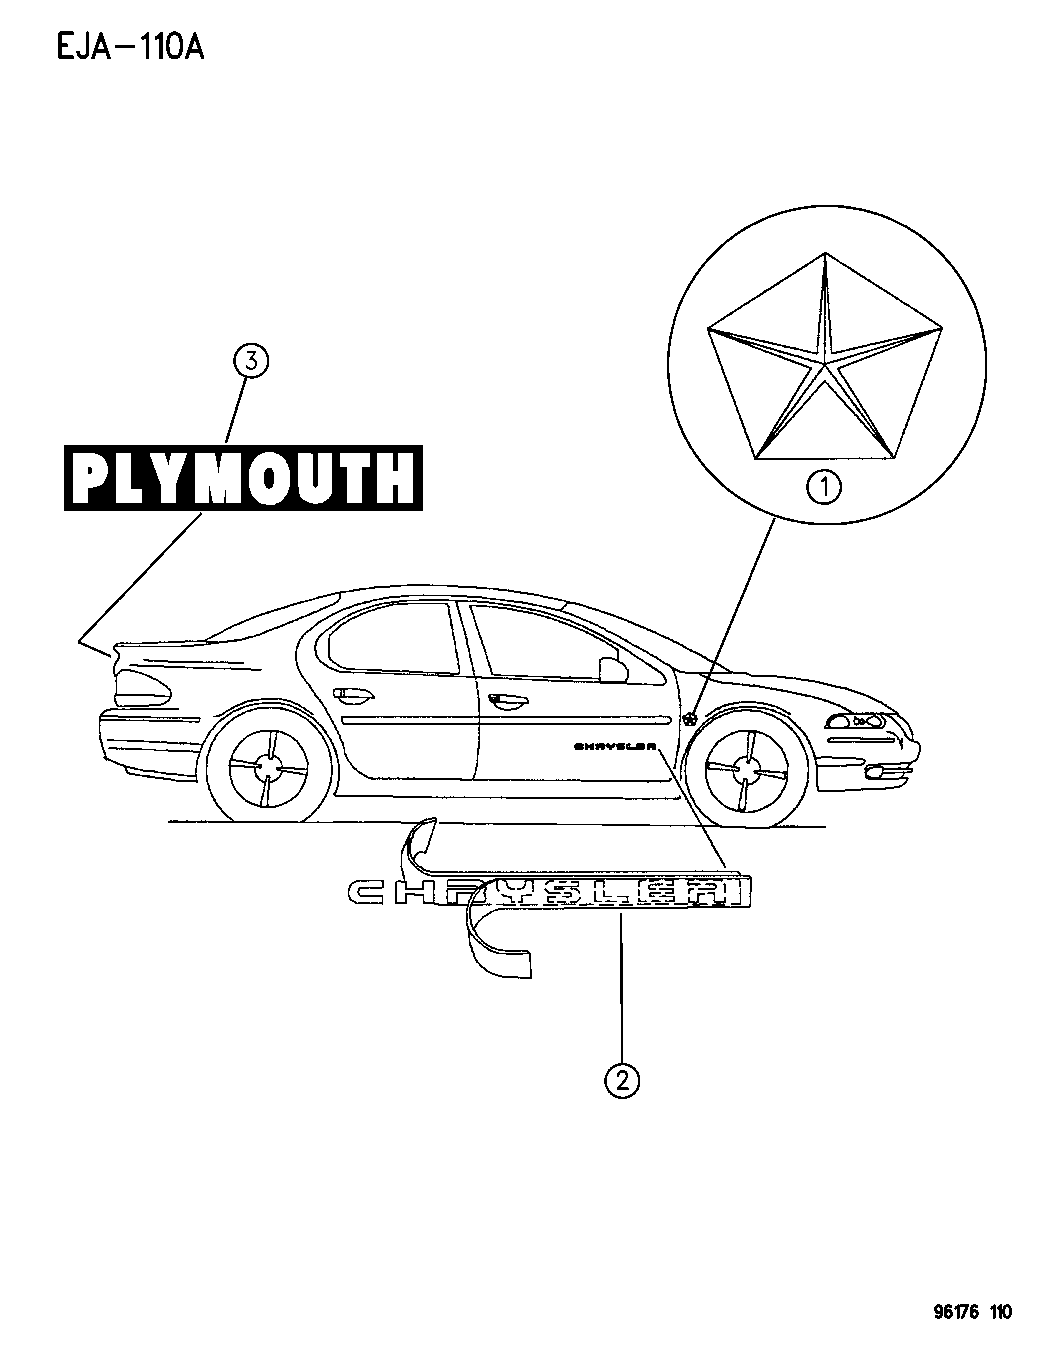 [WRG-7679] 1996 Plymouth Breeze Engine Diagram